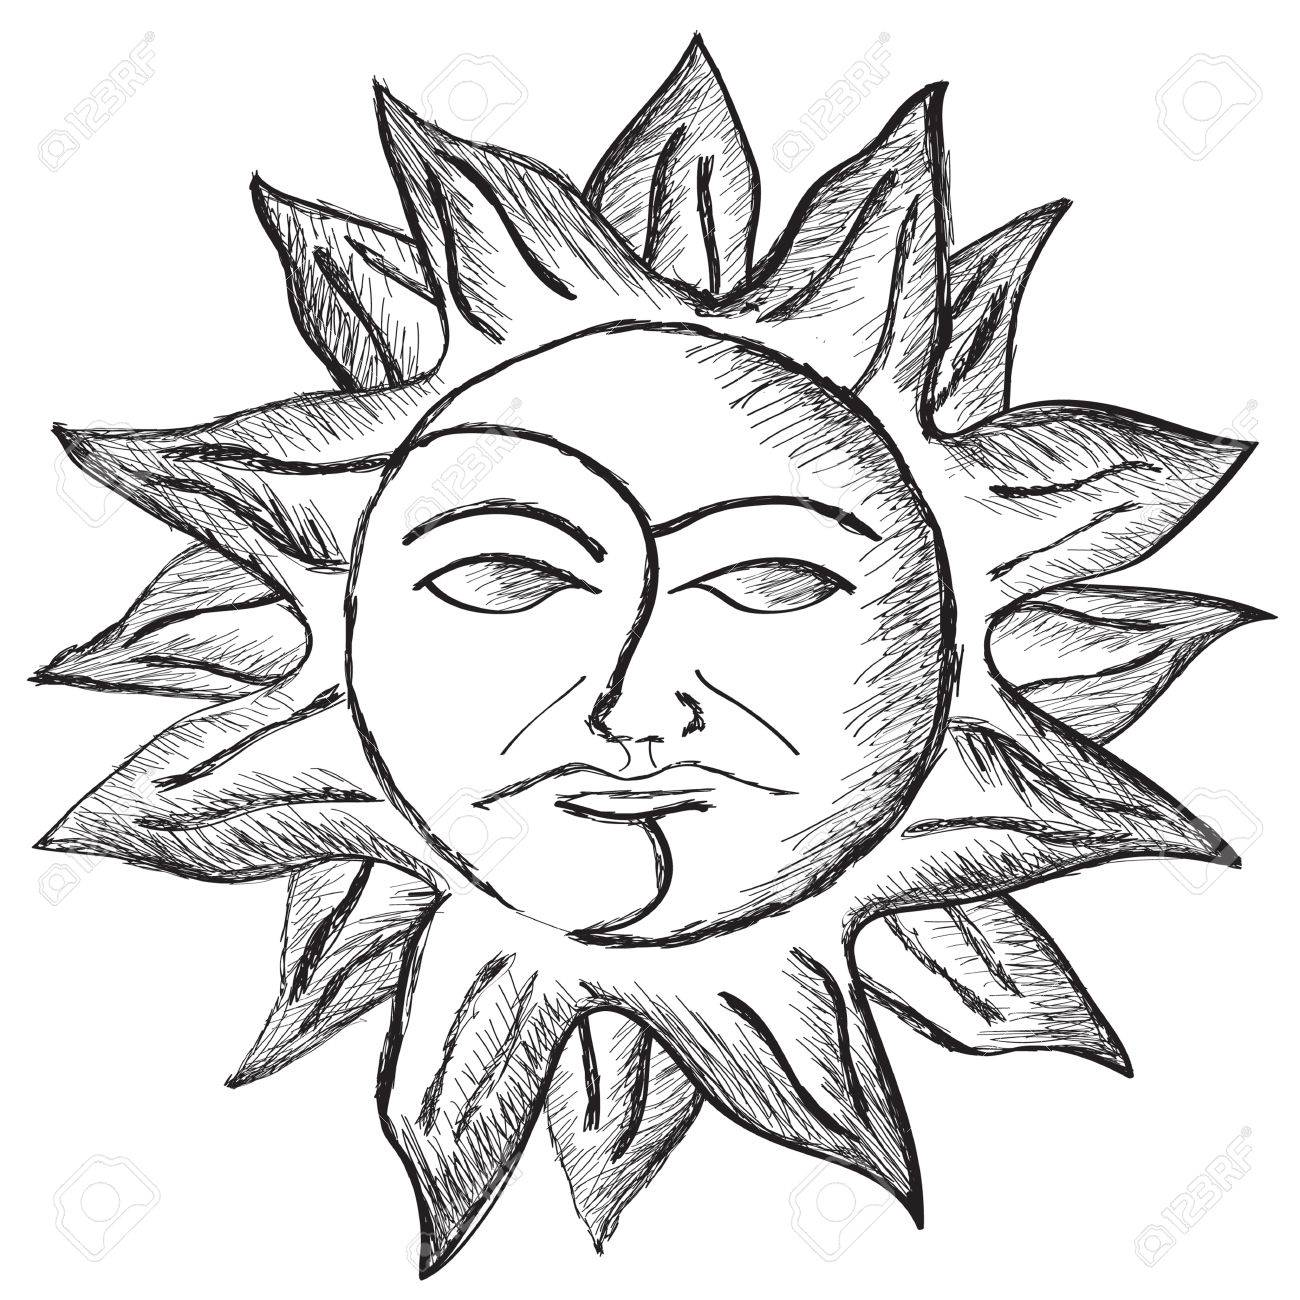 1300x1300 Black And White Pencil Sketch Of Sun And Moon Royalty Free